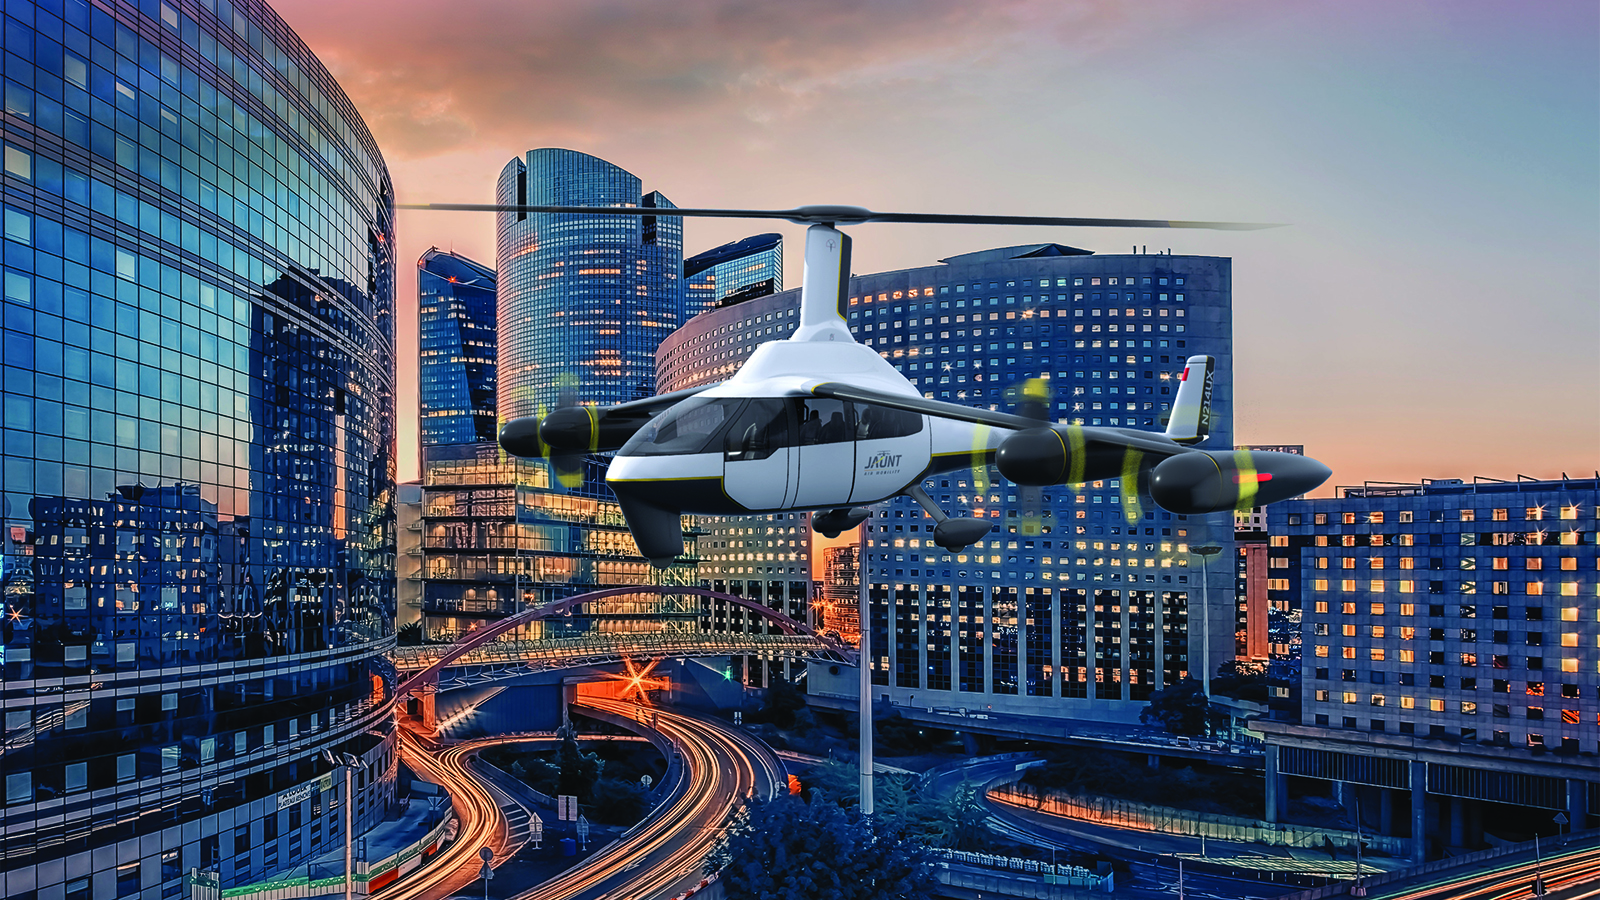 BAE Systems and Jaunt Air Mobility will investigate new product development for the future of aircraft electrification.